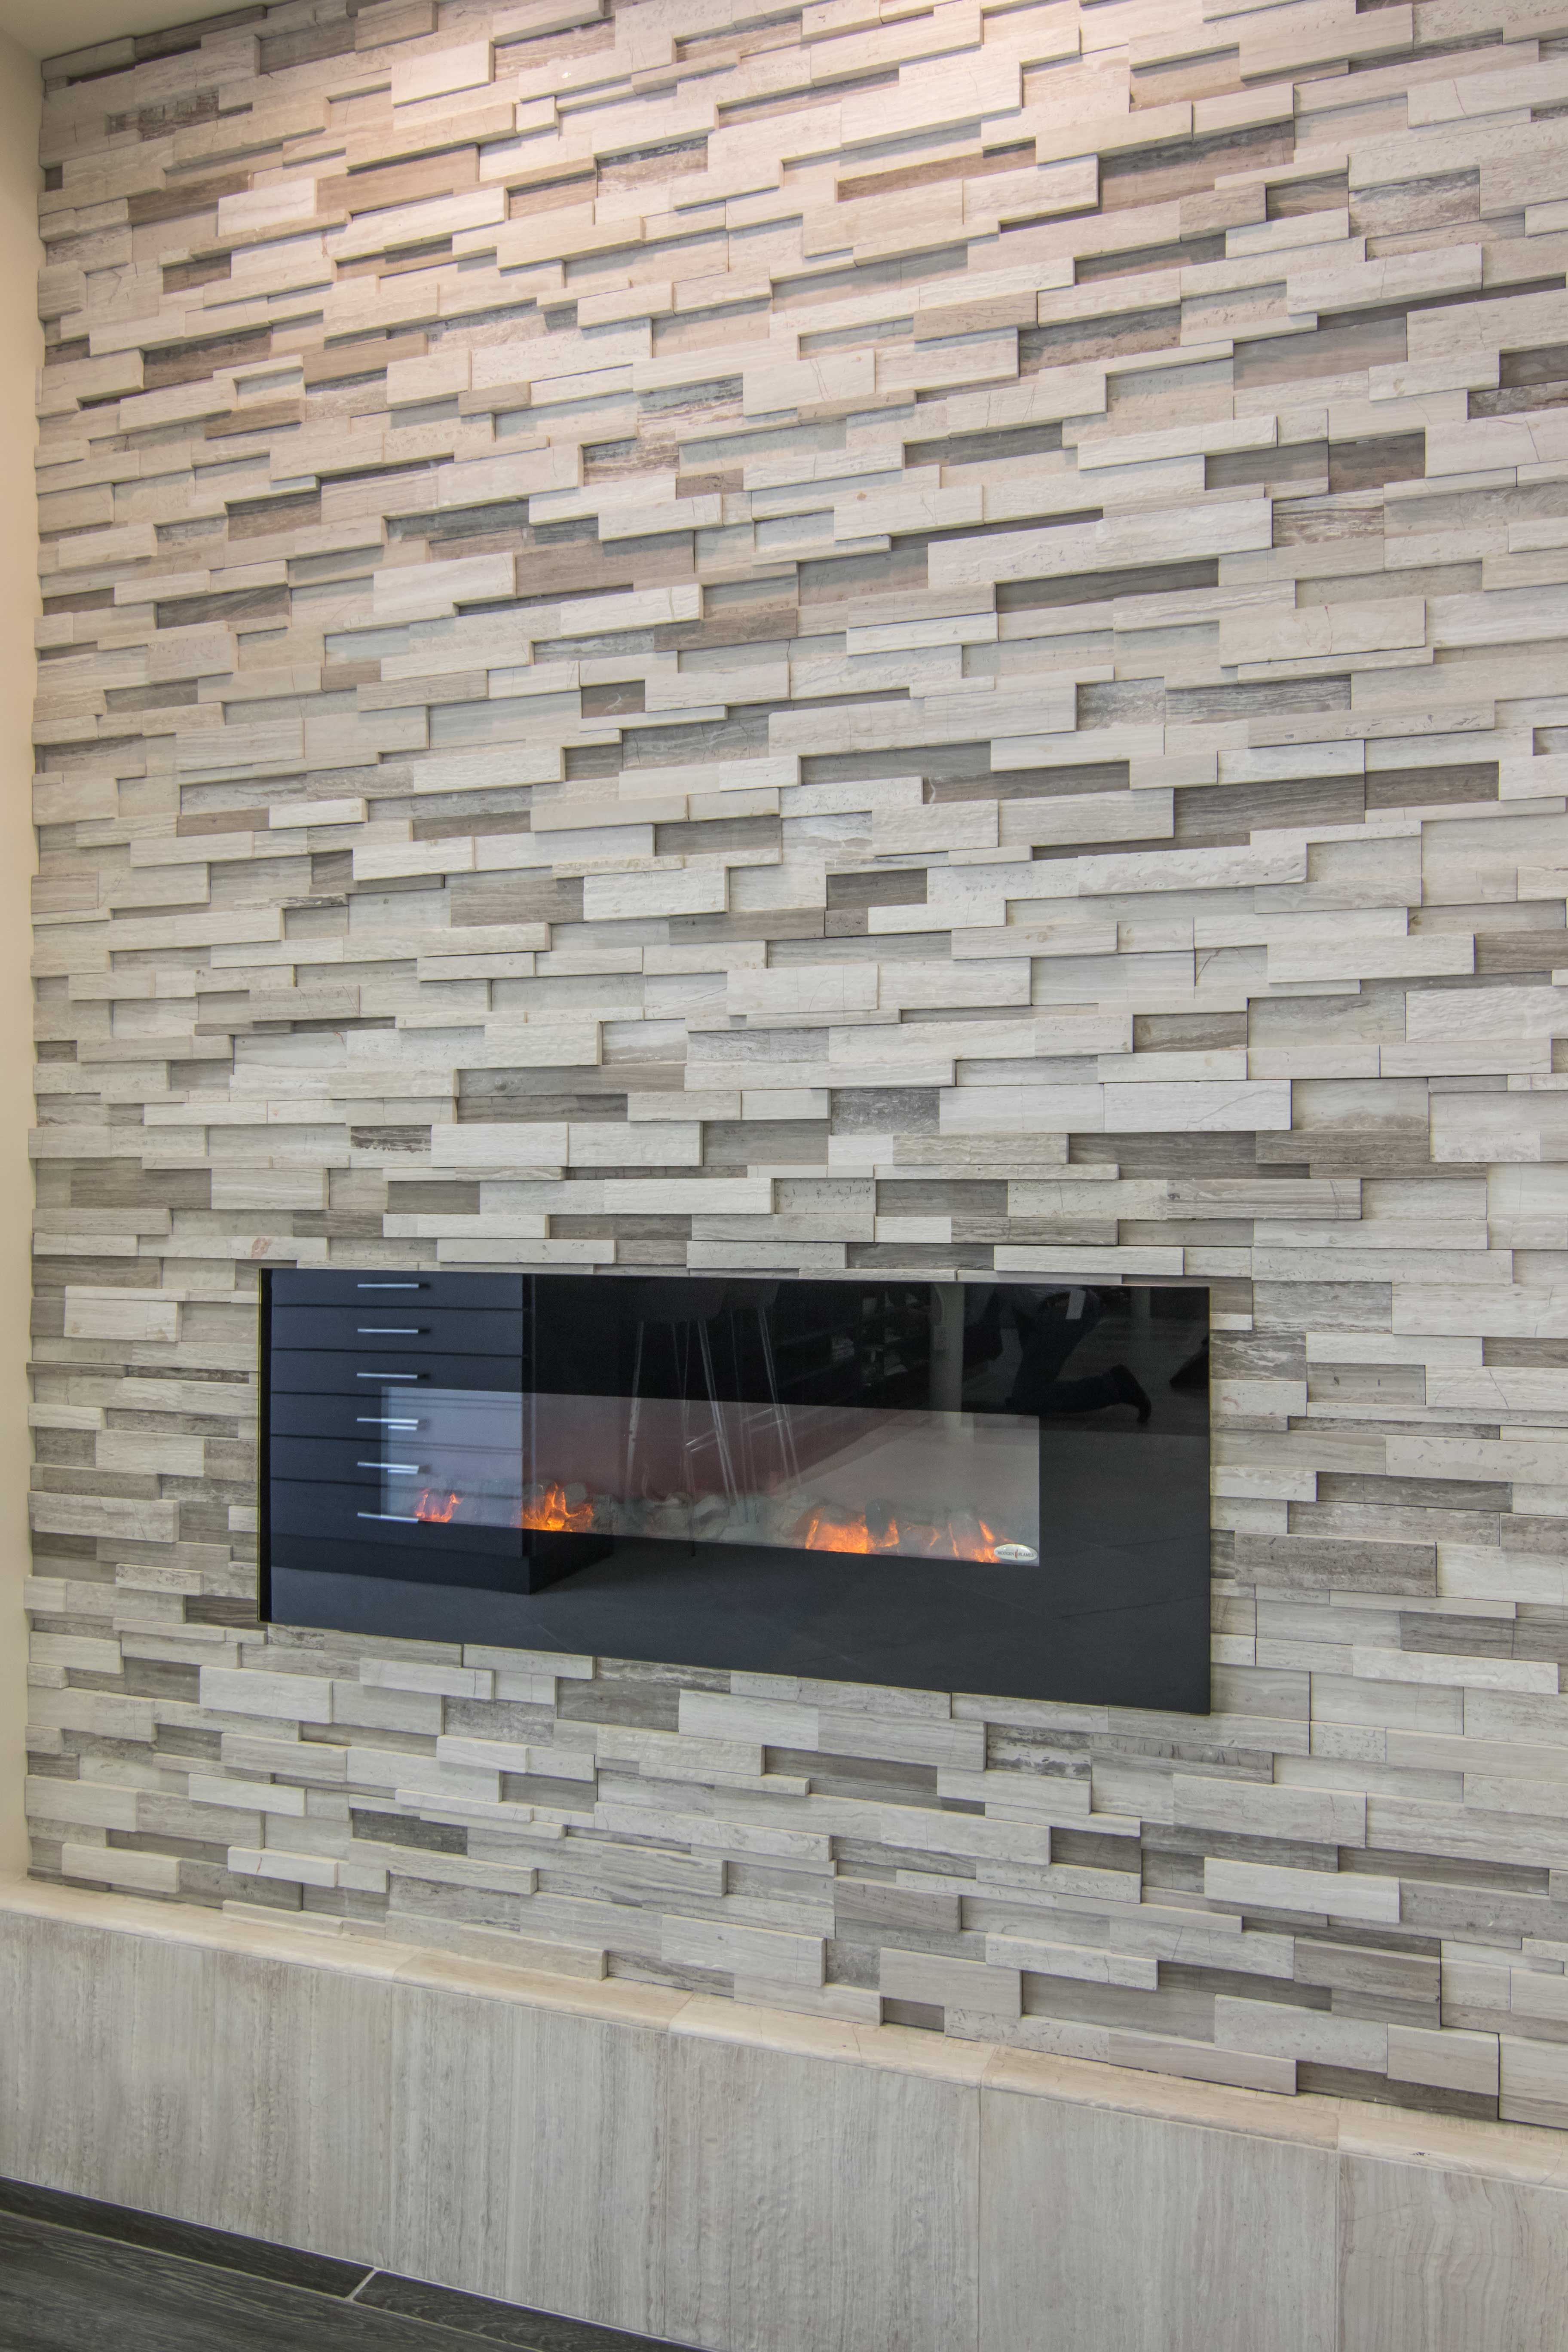 Cream hue fireplace tile - Legno Architectural Limestone Wall Tile ...